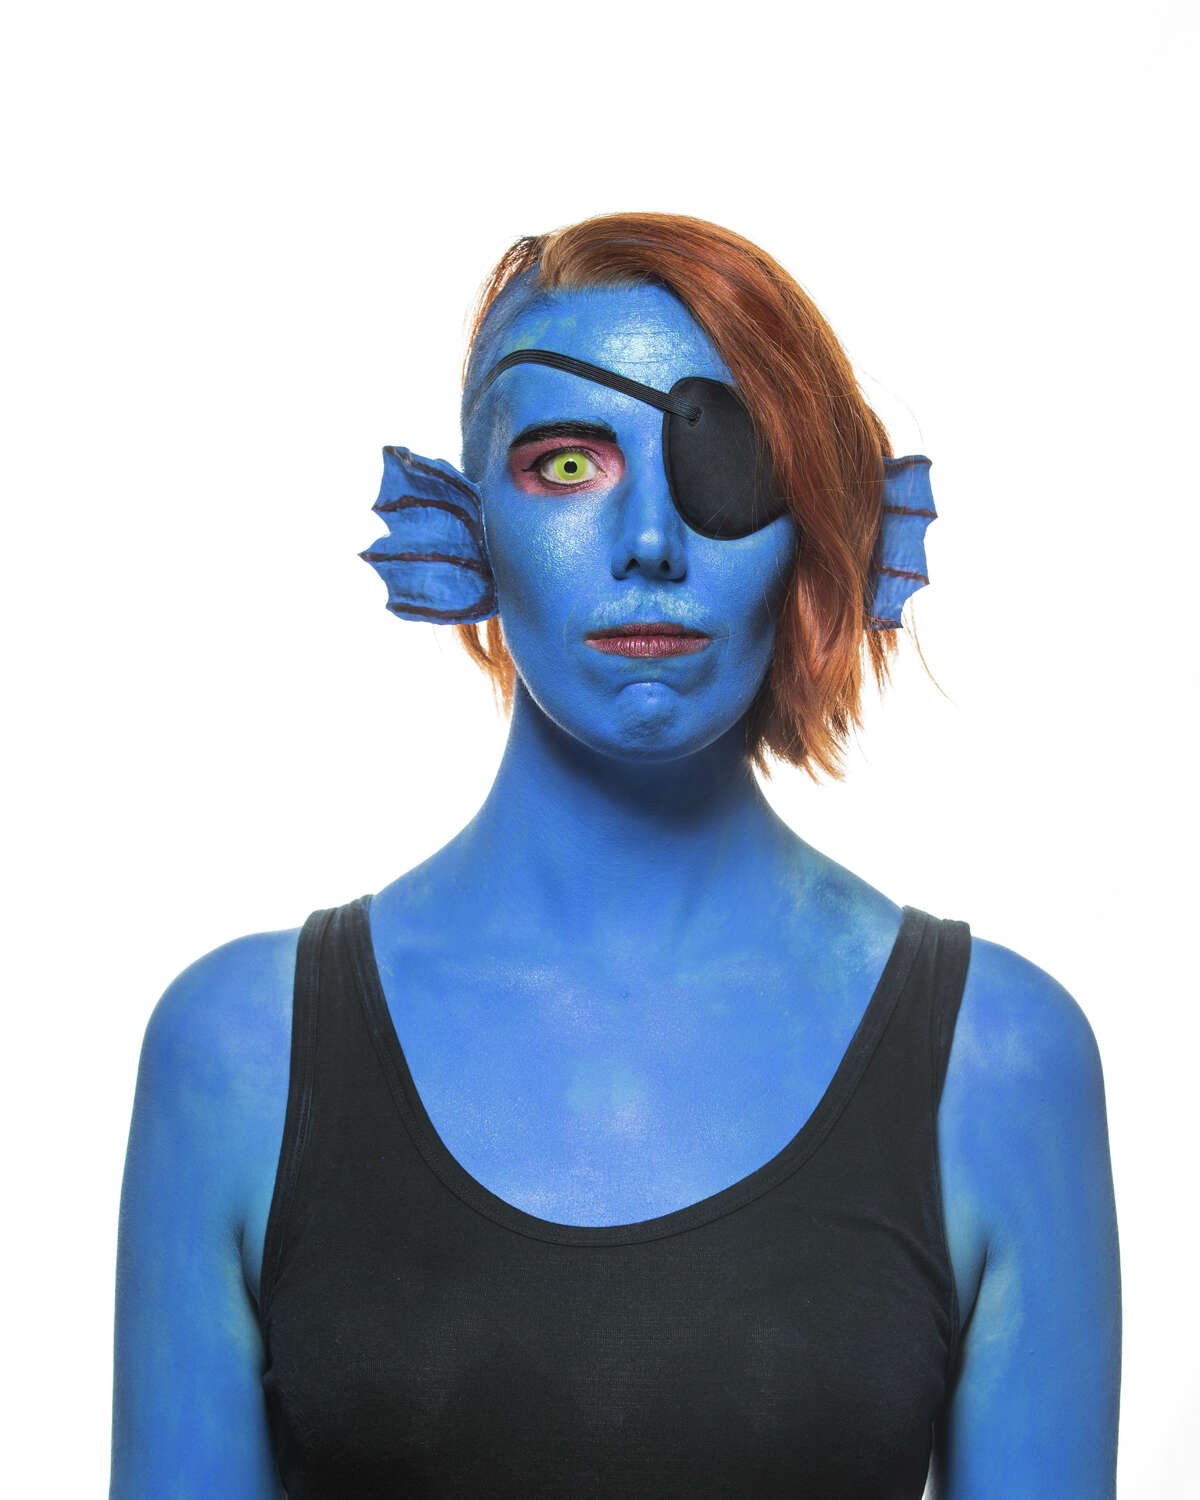 Kathryn Lingel poses for a portrait as Undyne from Undertale, a video game, during GeekGirlCon at the Washington State Convention Center on Saturday, Sept. 30, 2017.